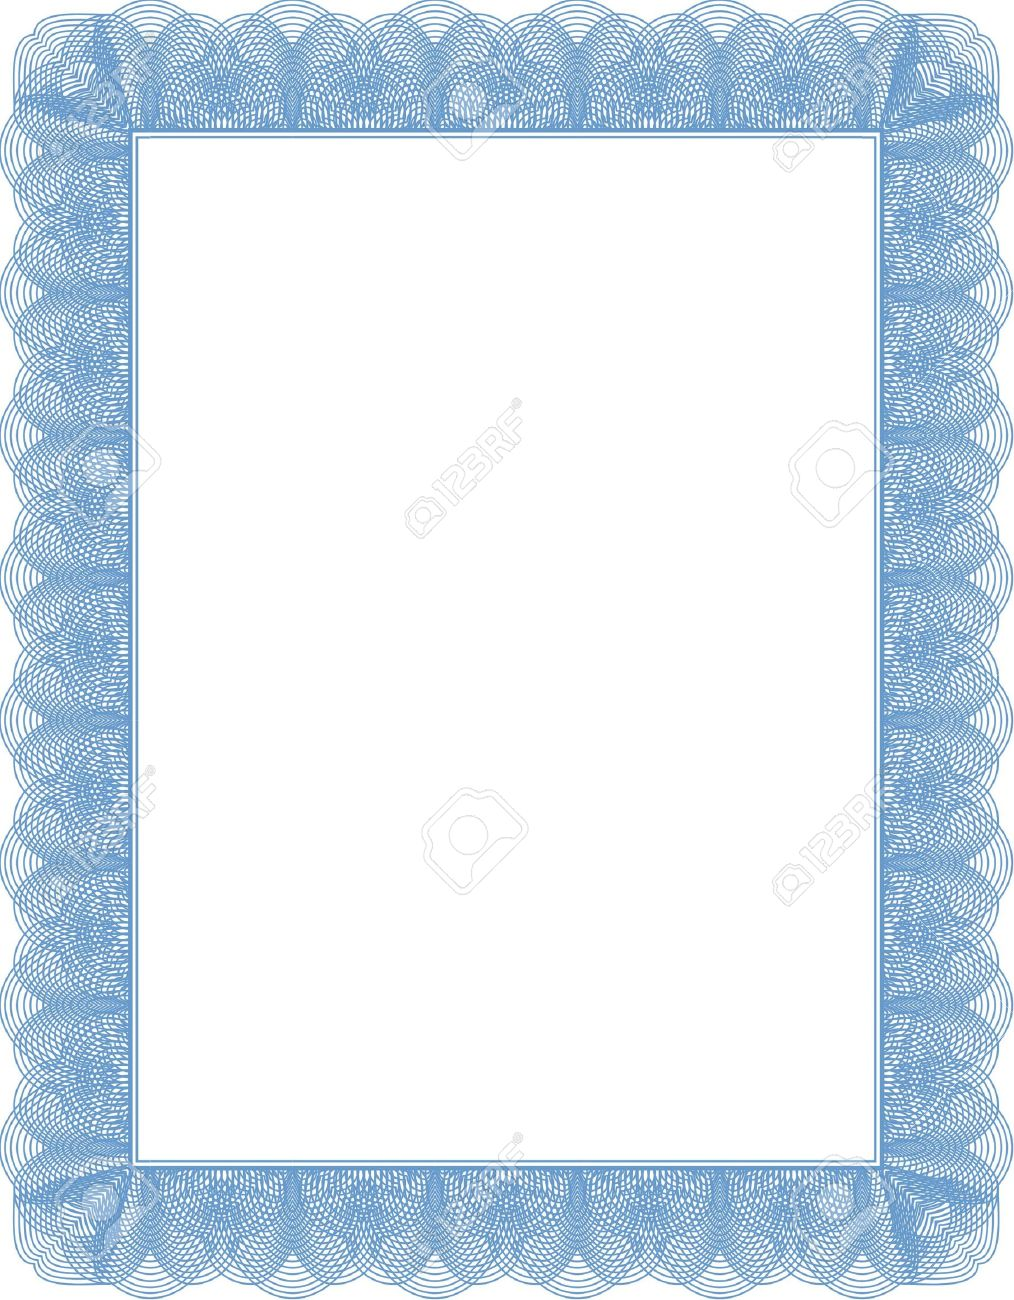 Certificate Diploma Template. Blank Stock Photo, Picture And Royalty ...